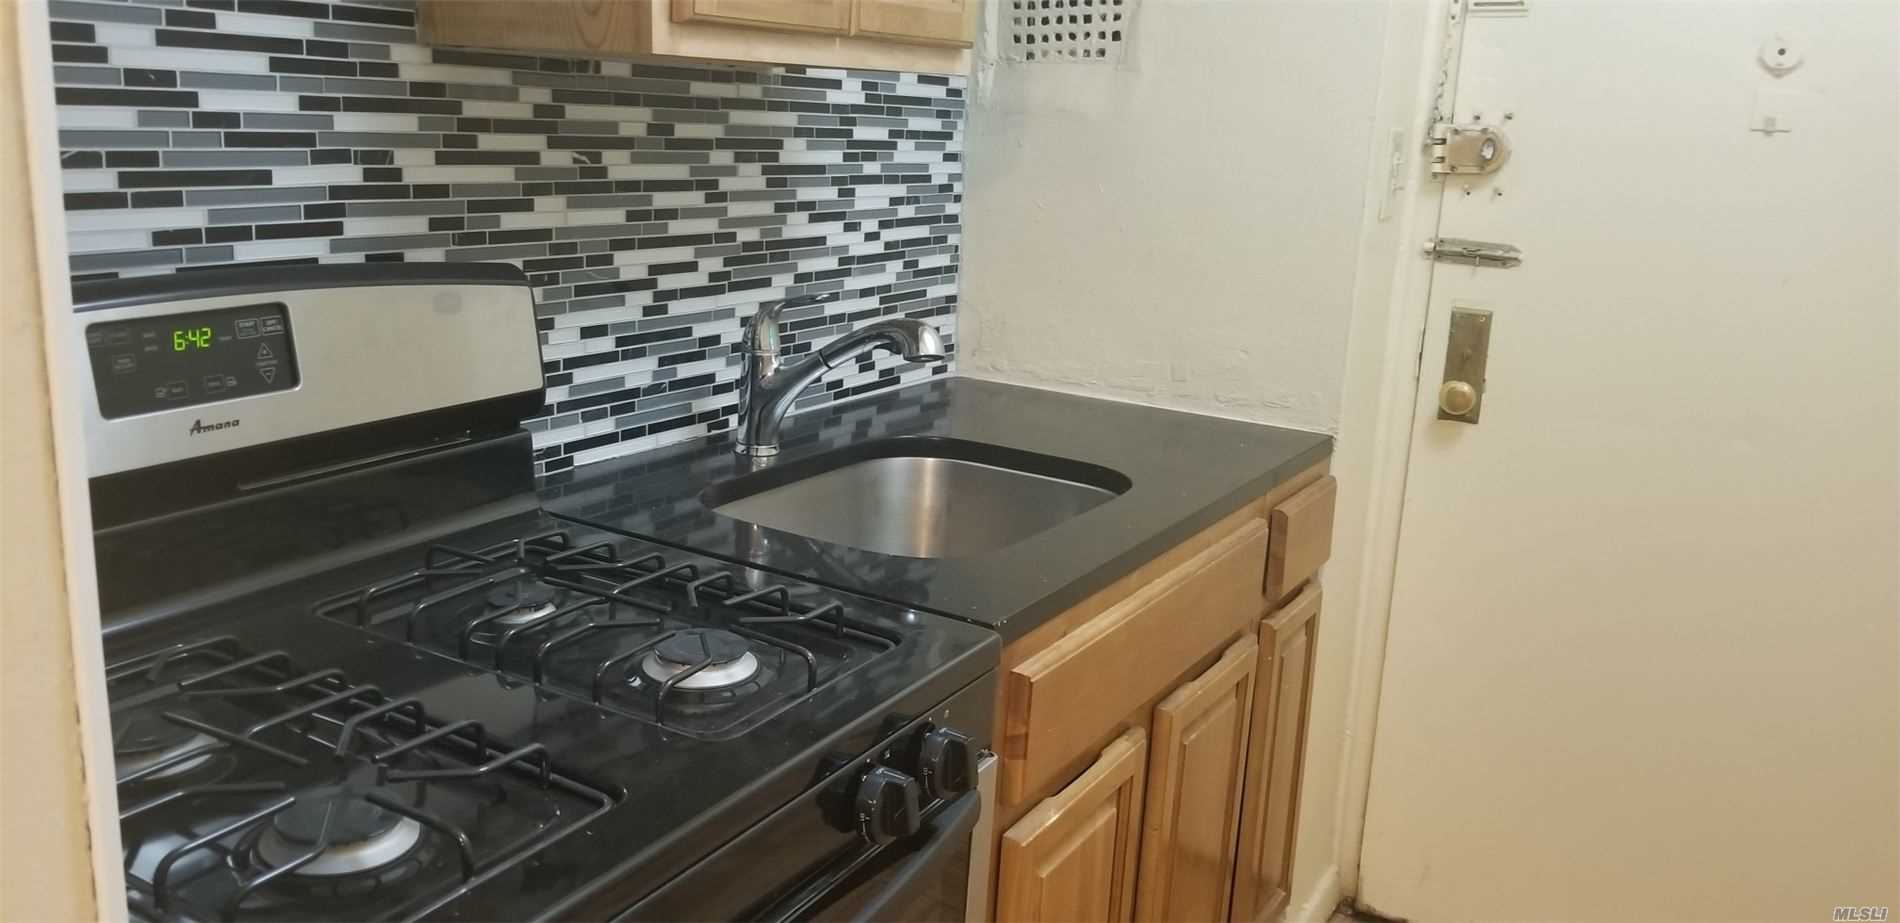 This Co-op Features a Studio Unit, Full Bath, Kitchen and so much more. Co-op is renovated and is in excellent condition. Indoor parking and 24 hour gym available for fee. Walking Distance to Major Transportation & Shopping. Less than a mile from St. John's University.